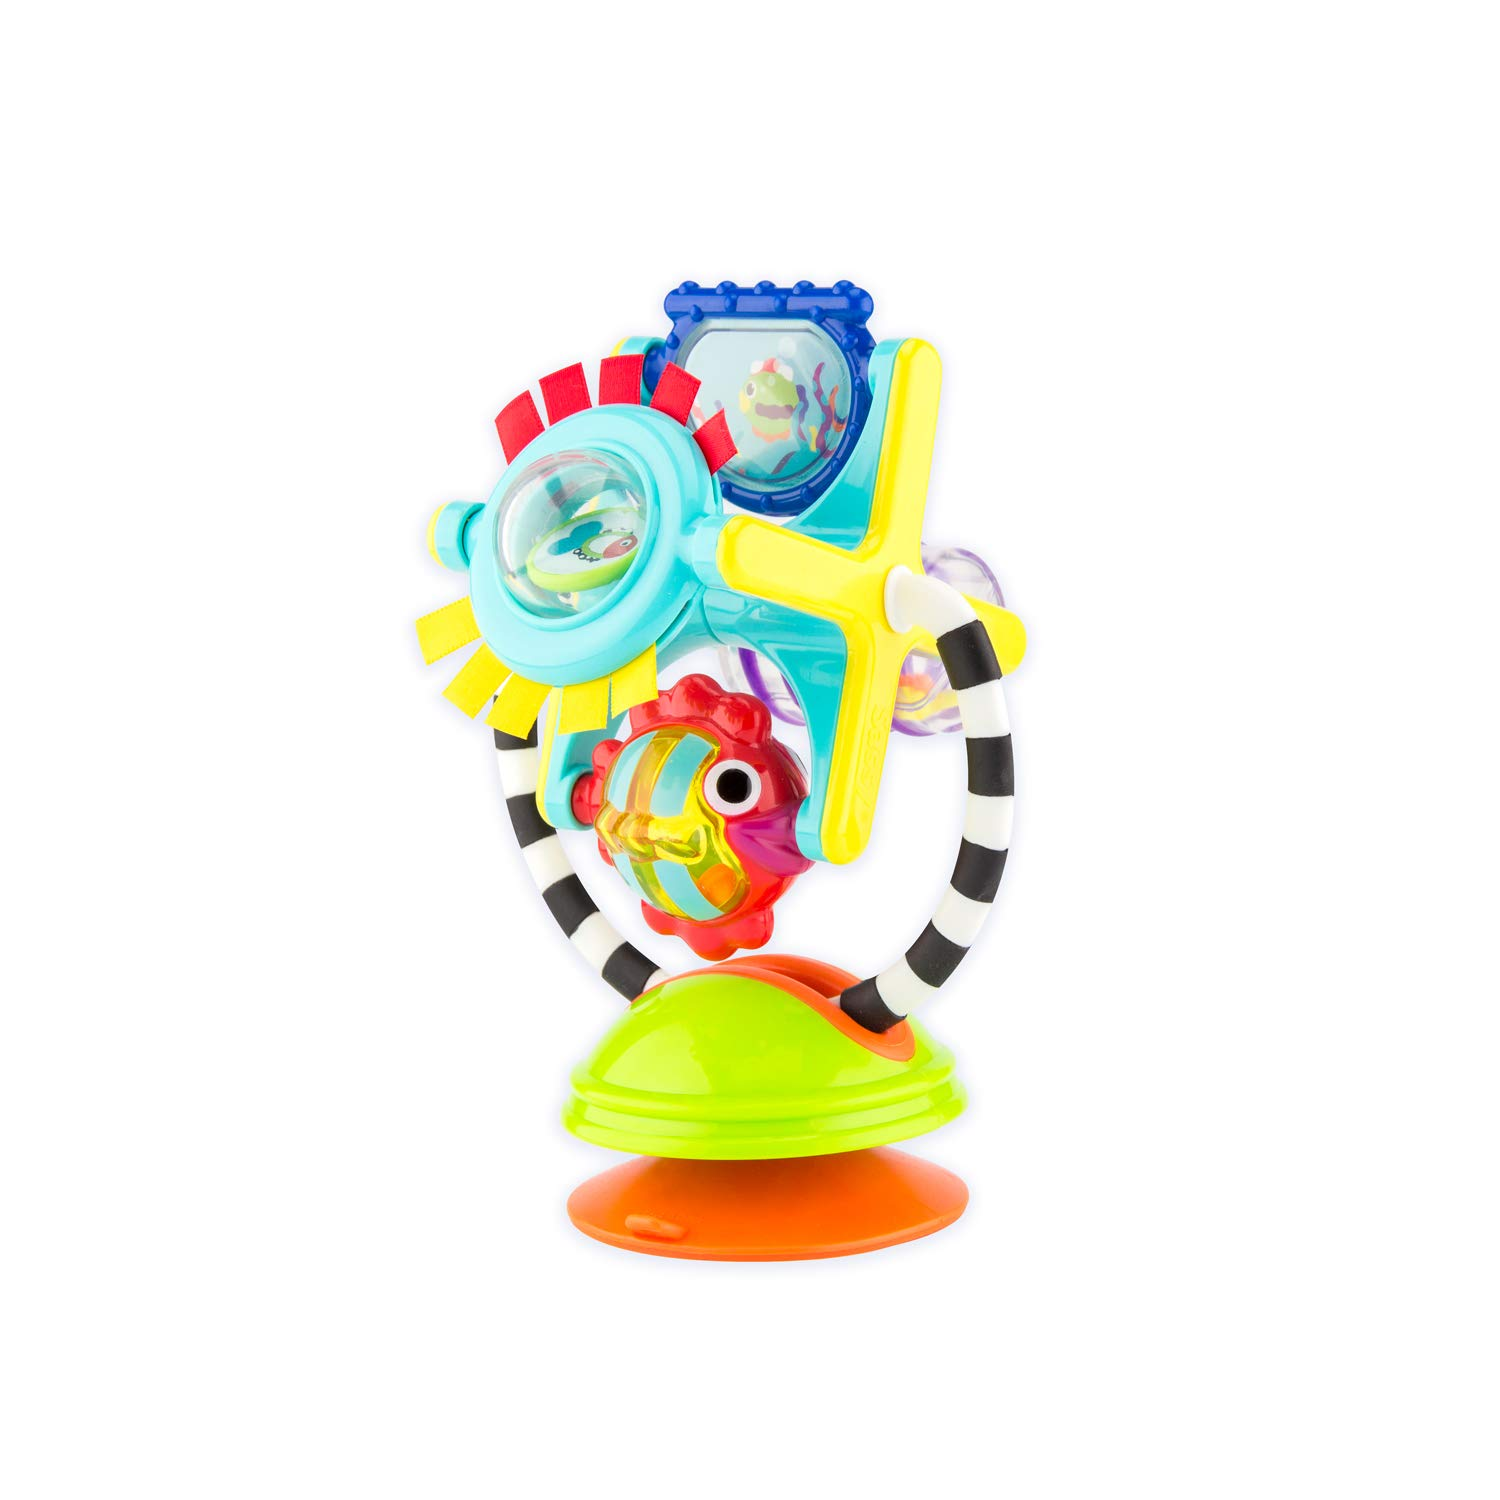 Sassy Fishy Fascination Station - 6+ Months 2-in-1 Toy Suction Cup Removable Base For High Chair Or Floor Play So Baby Can Explore The Many Features Of This Station